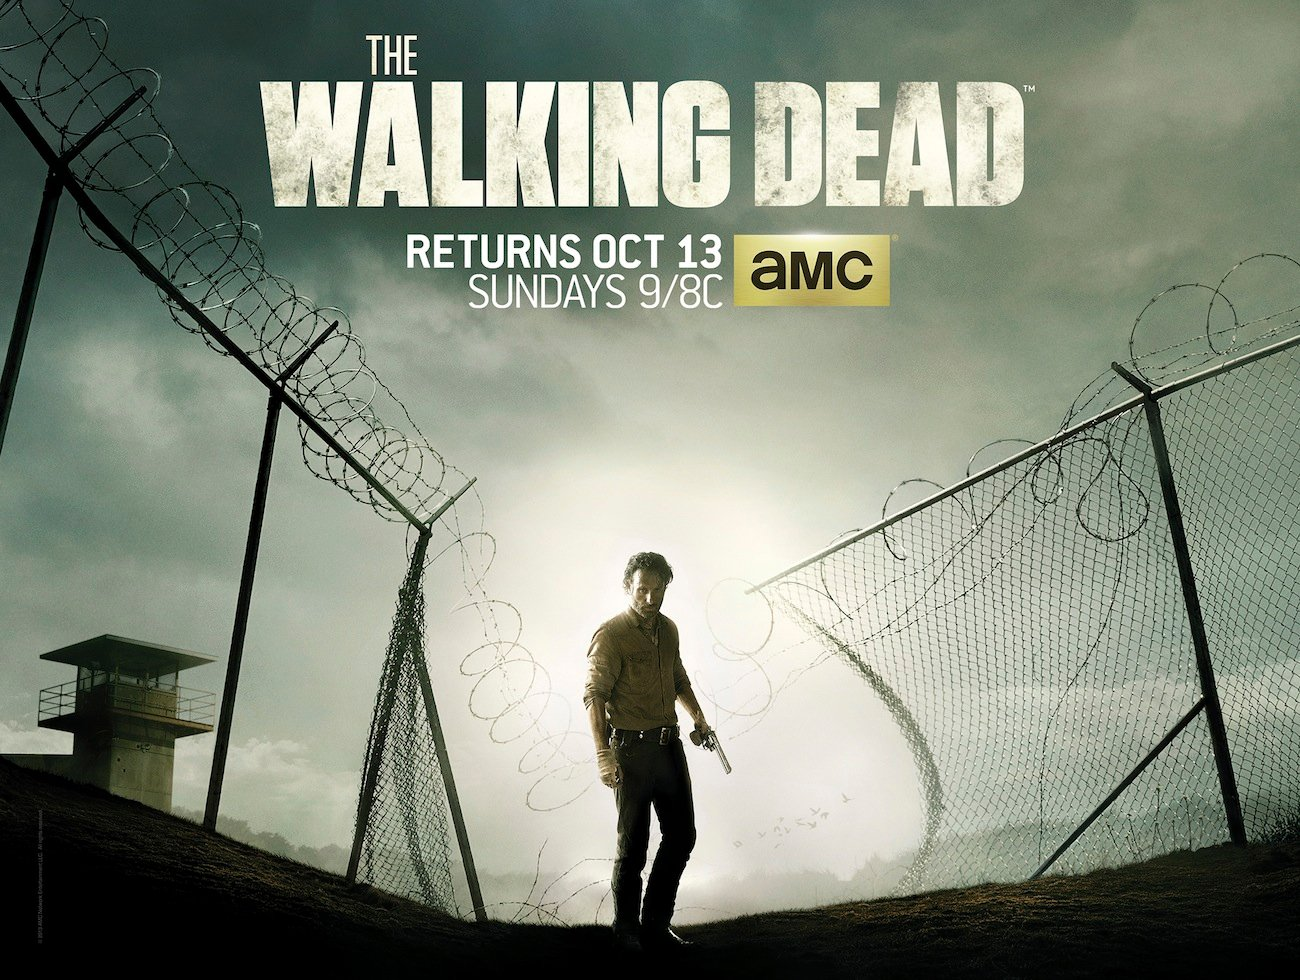 The Walking Dead Season 4 Poster Shows The Prison Looking Less Secure  #28714